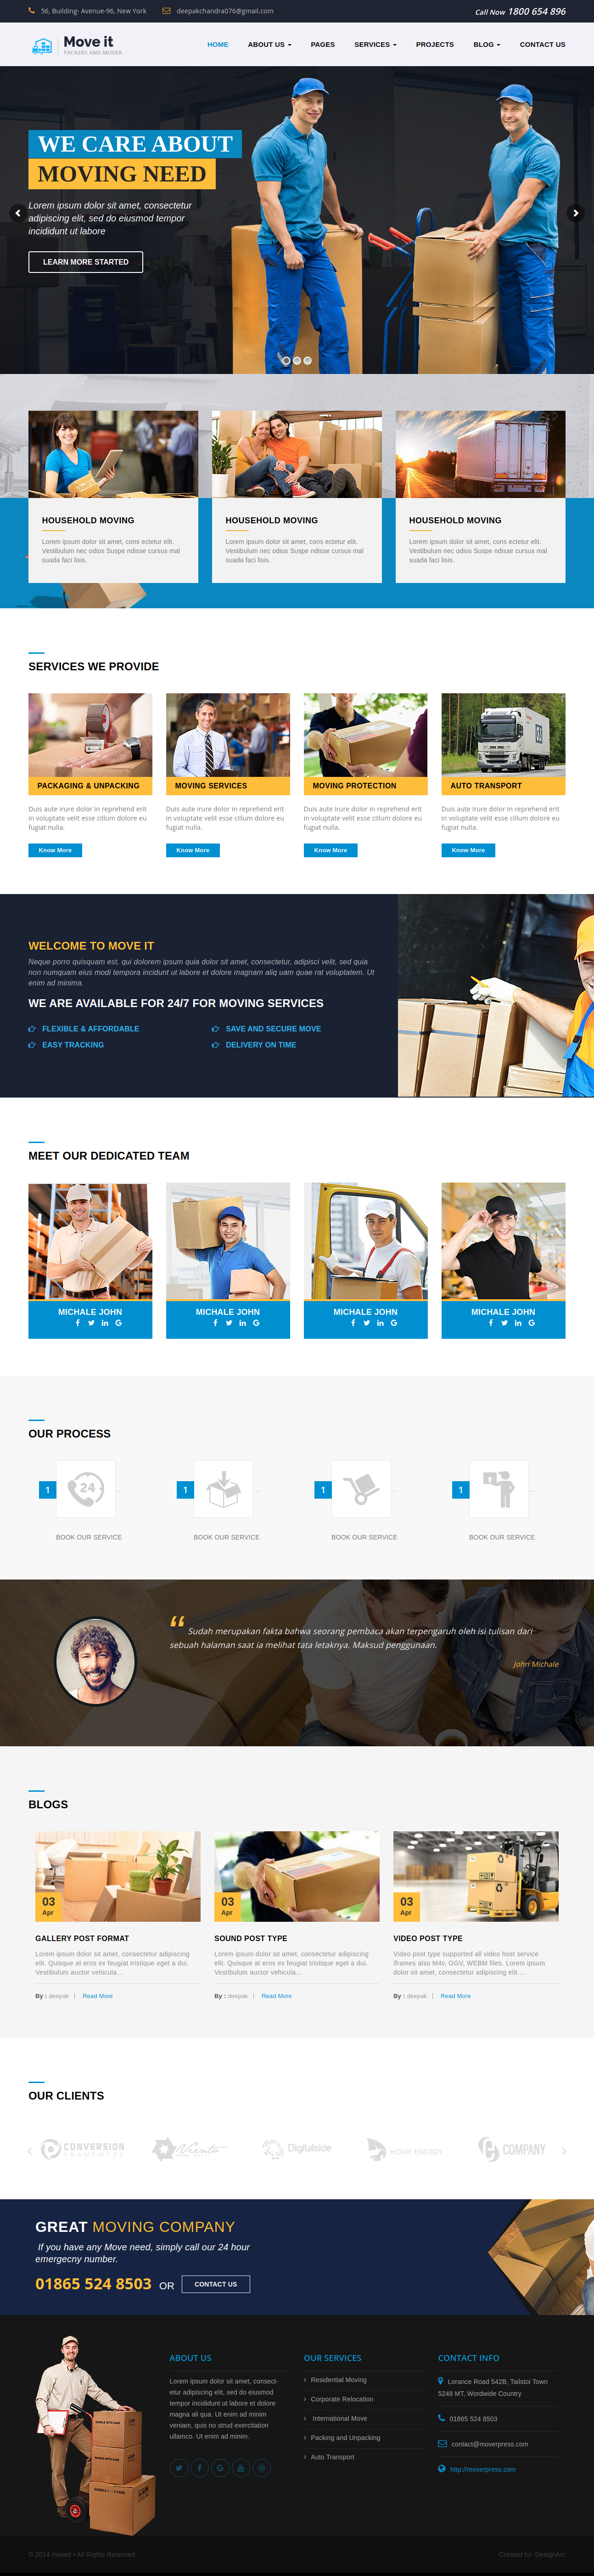 Packers & Movers Website Development Company in Allahabad